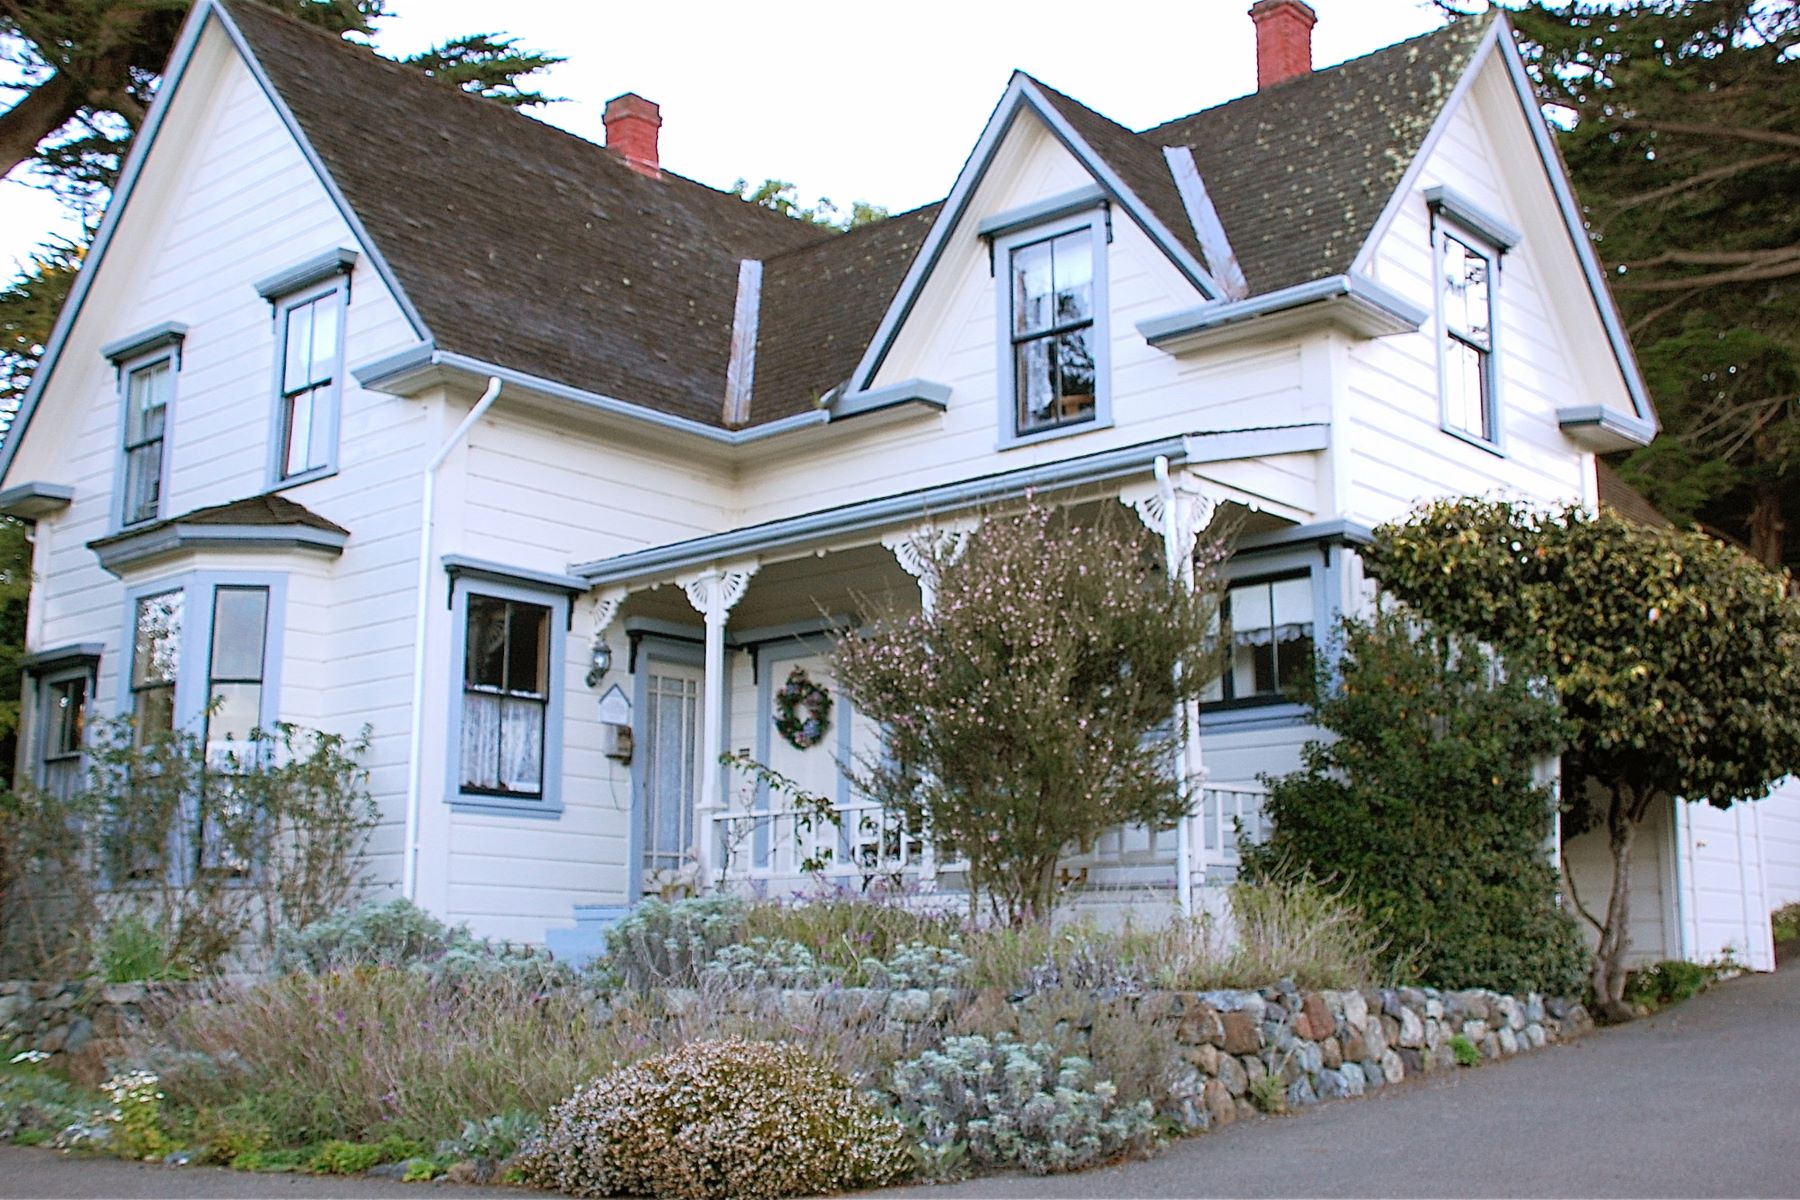 Commercial for Sale at Dennen's Victorian Farmhouse 7001 N Highway One Little River, California 95456 United States